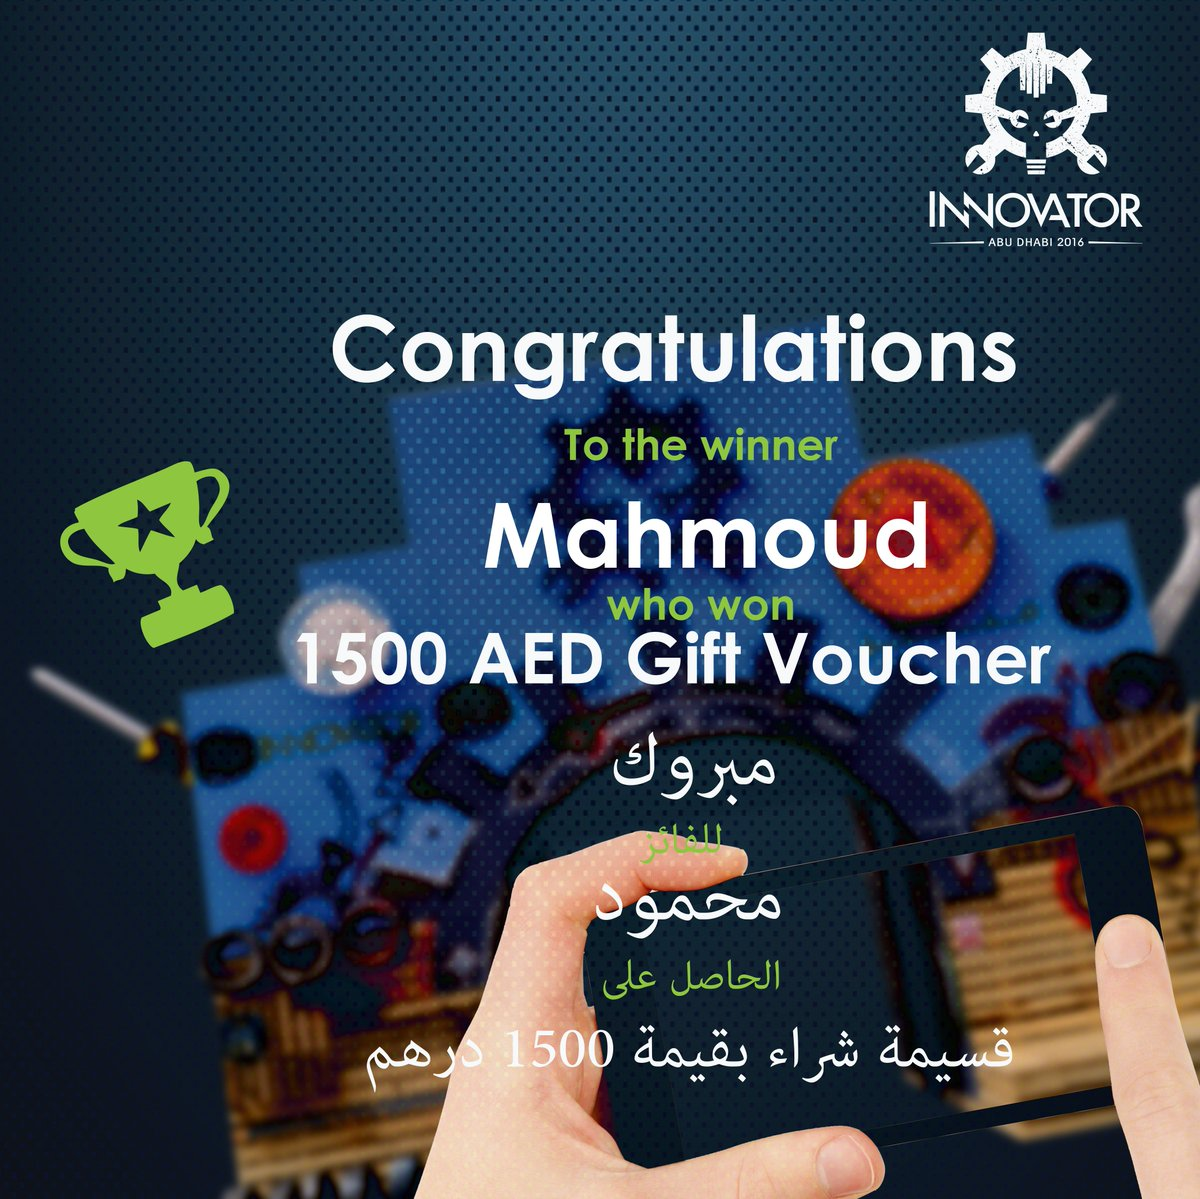 Congratulations to the winner Mahmoud who participated in our Hashtag Competition and won a 1500AED gift Voucher! https://t.co/7qfiBYMWdF